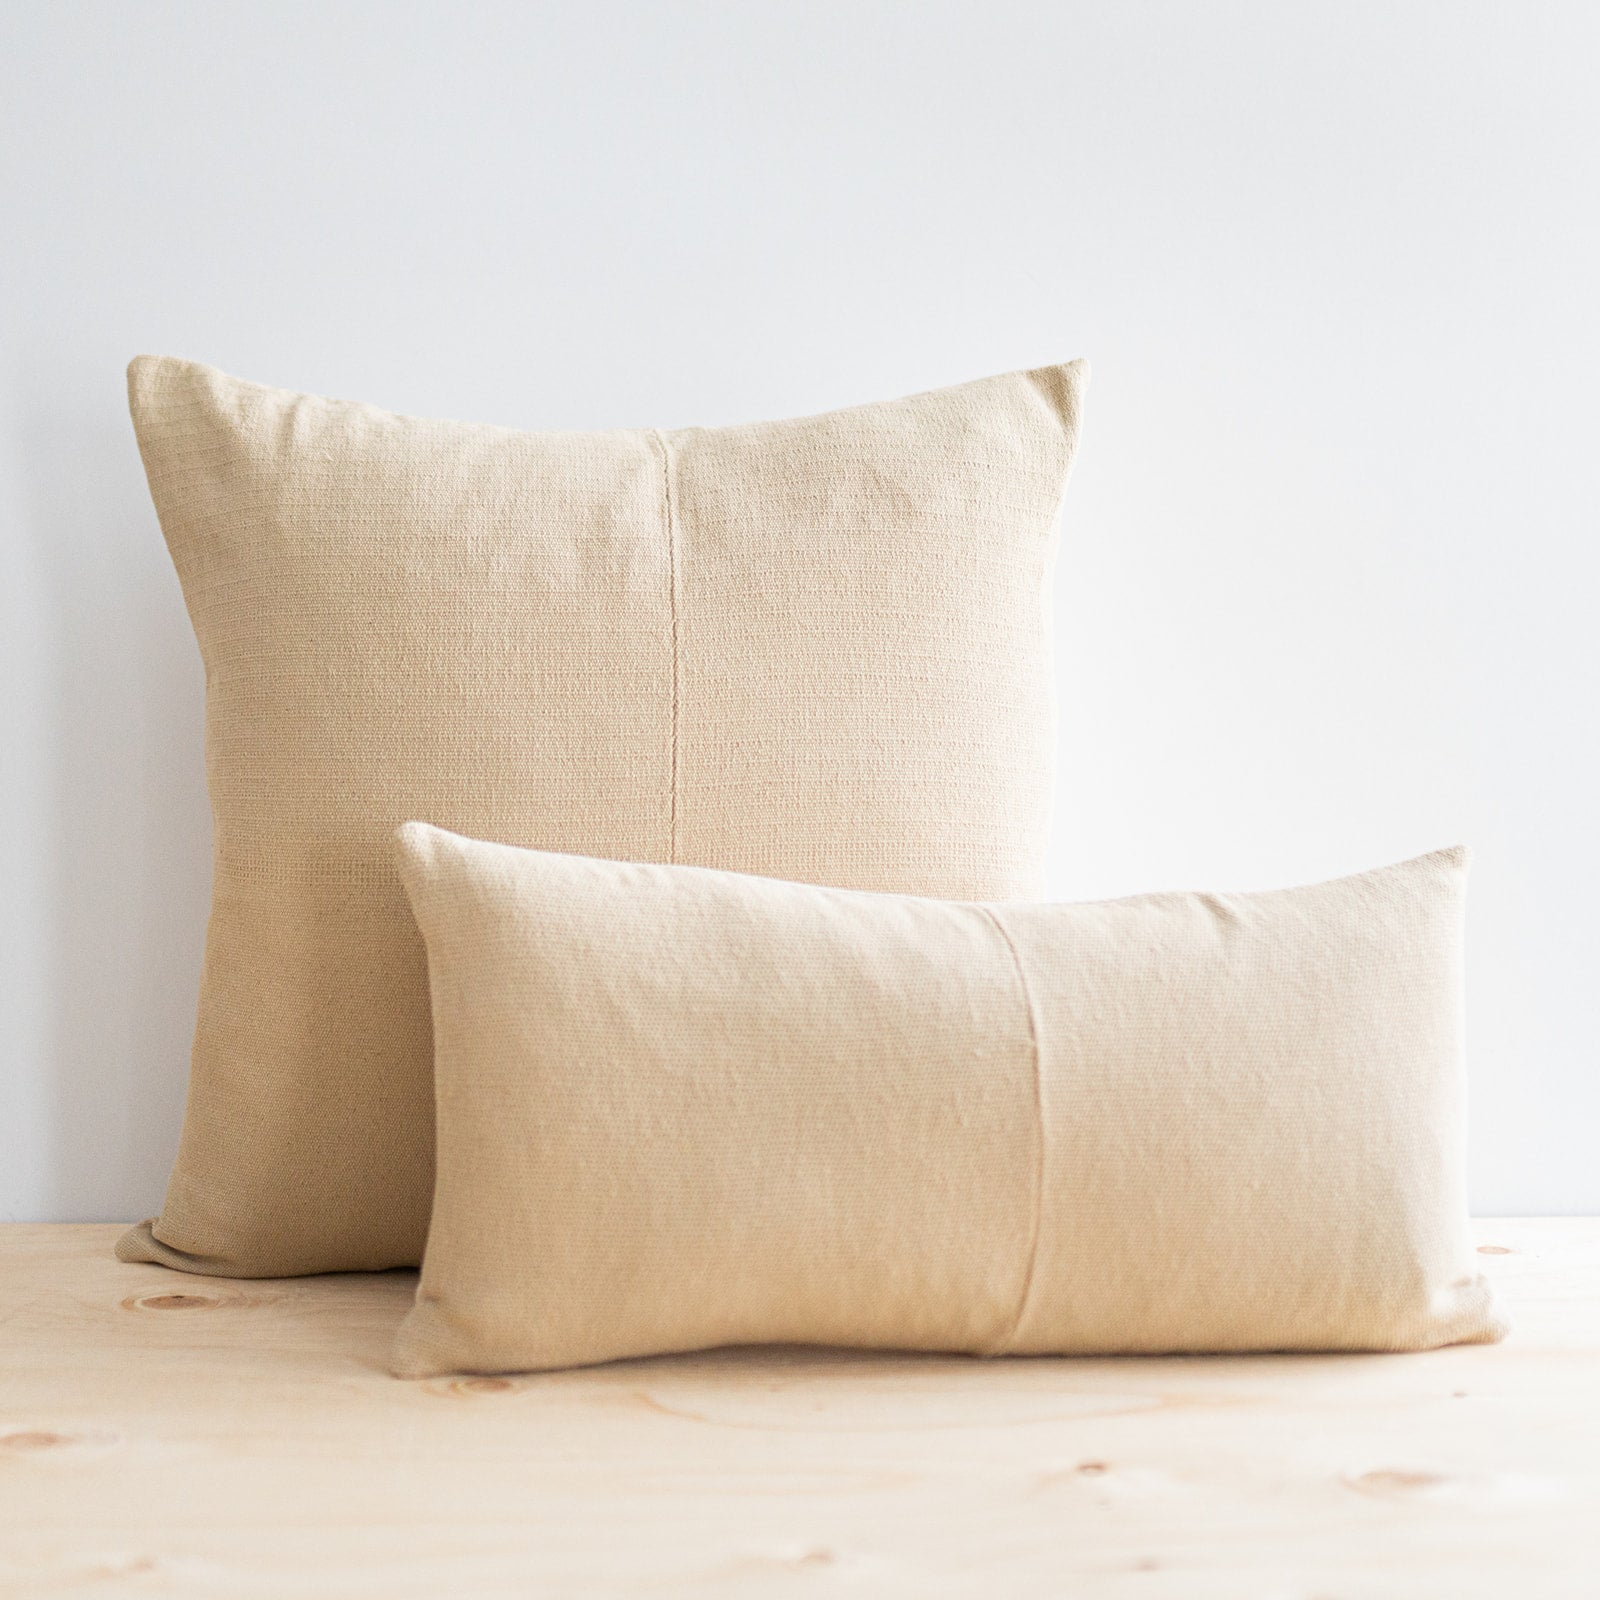 Karen Natural Pillow